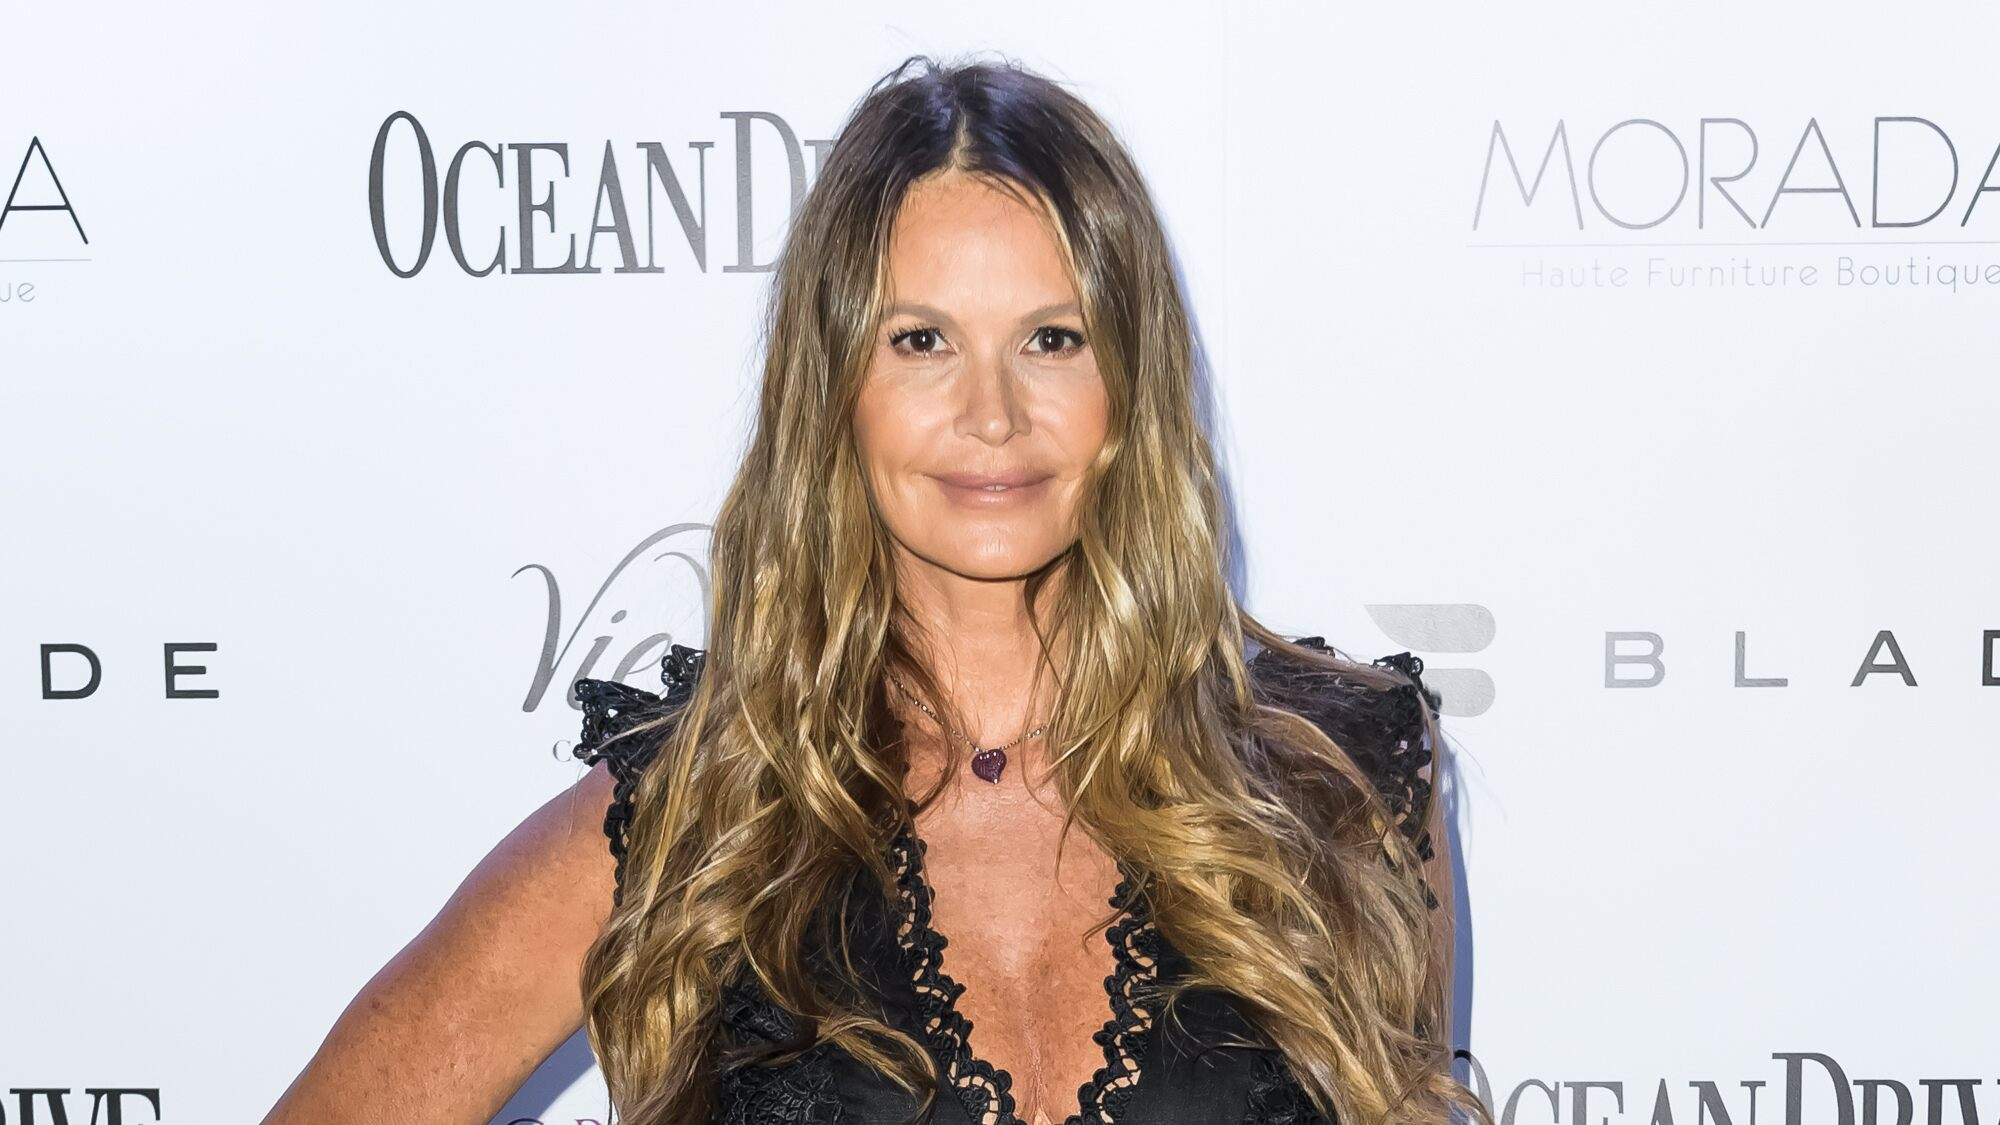 Elle Macpherson, 55, shows off massage technique that she claims shrinks her waist